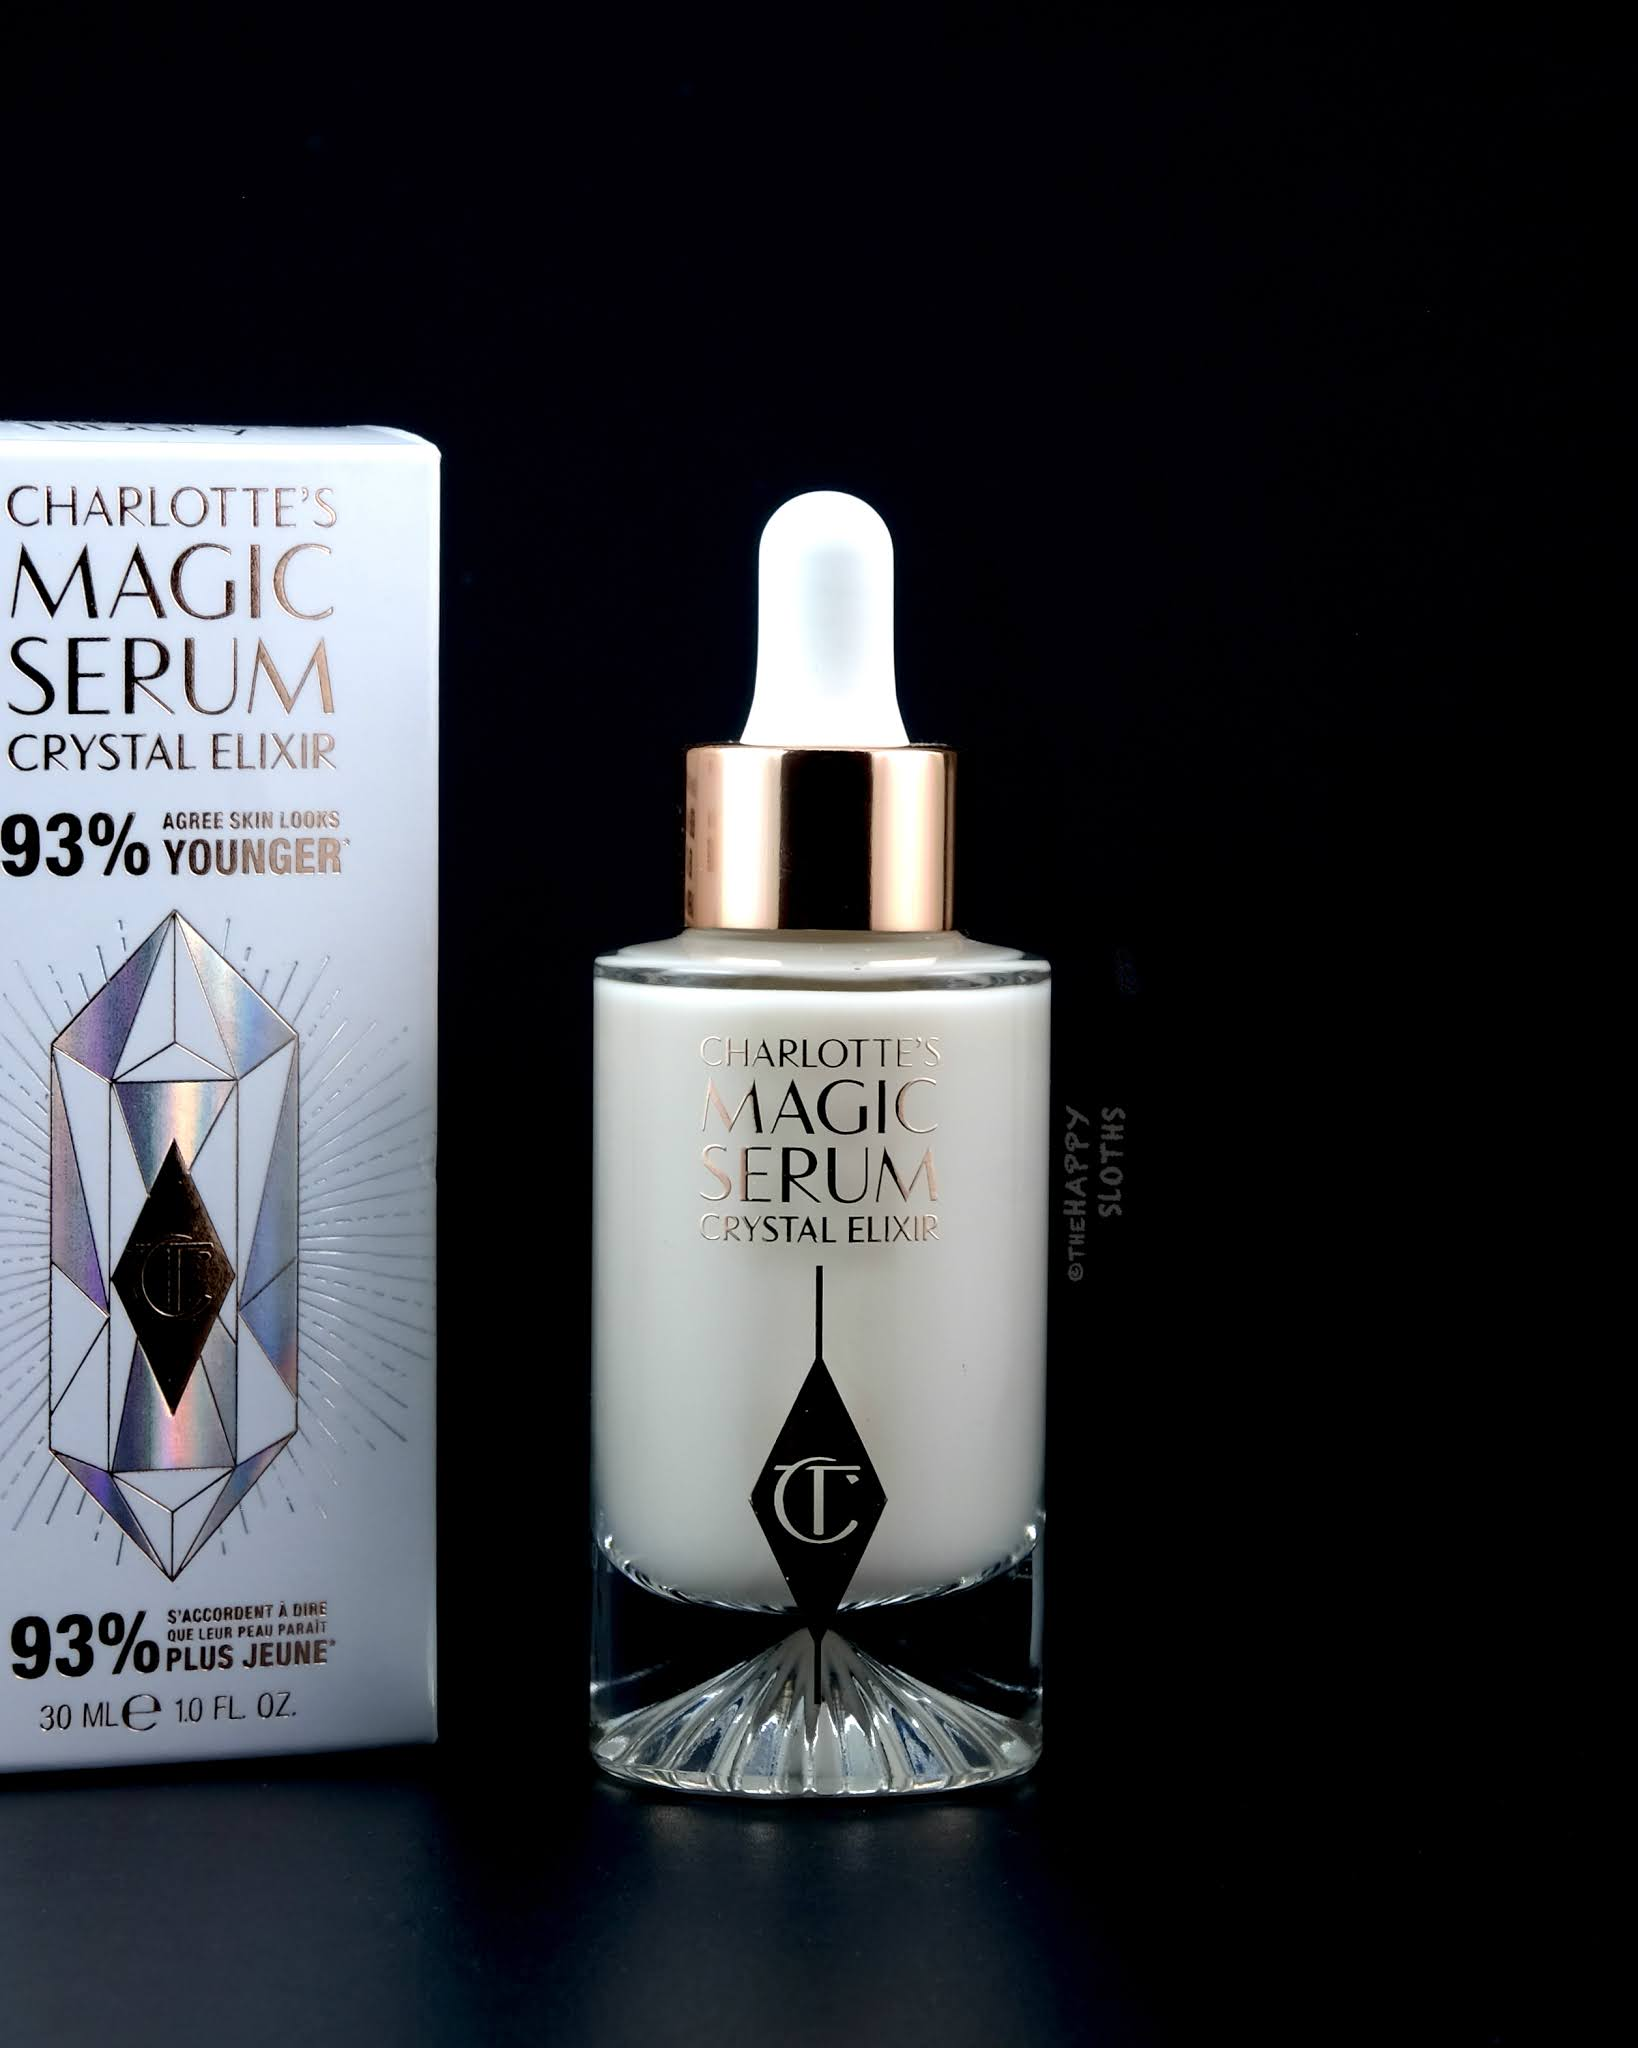 Charlotte Tilbury | Charlotte's Magic Serum Crystal Elixir: Review